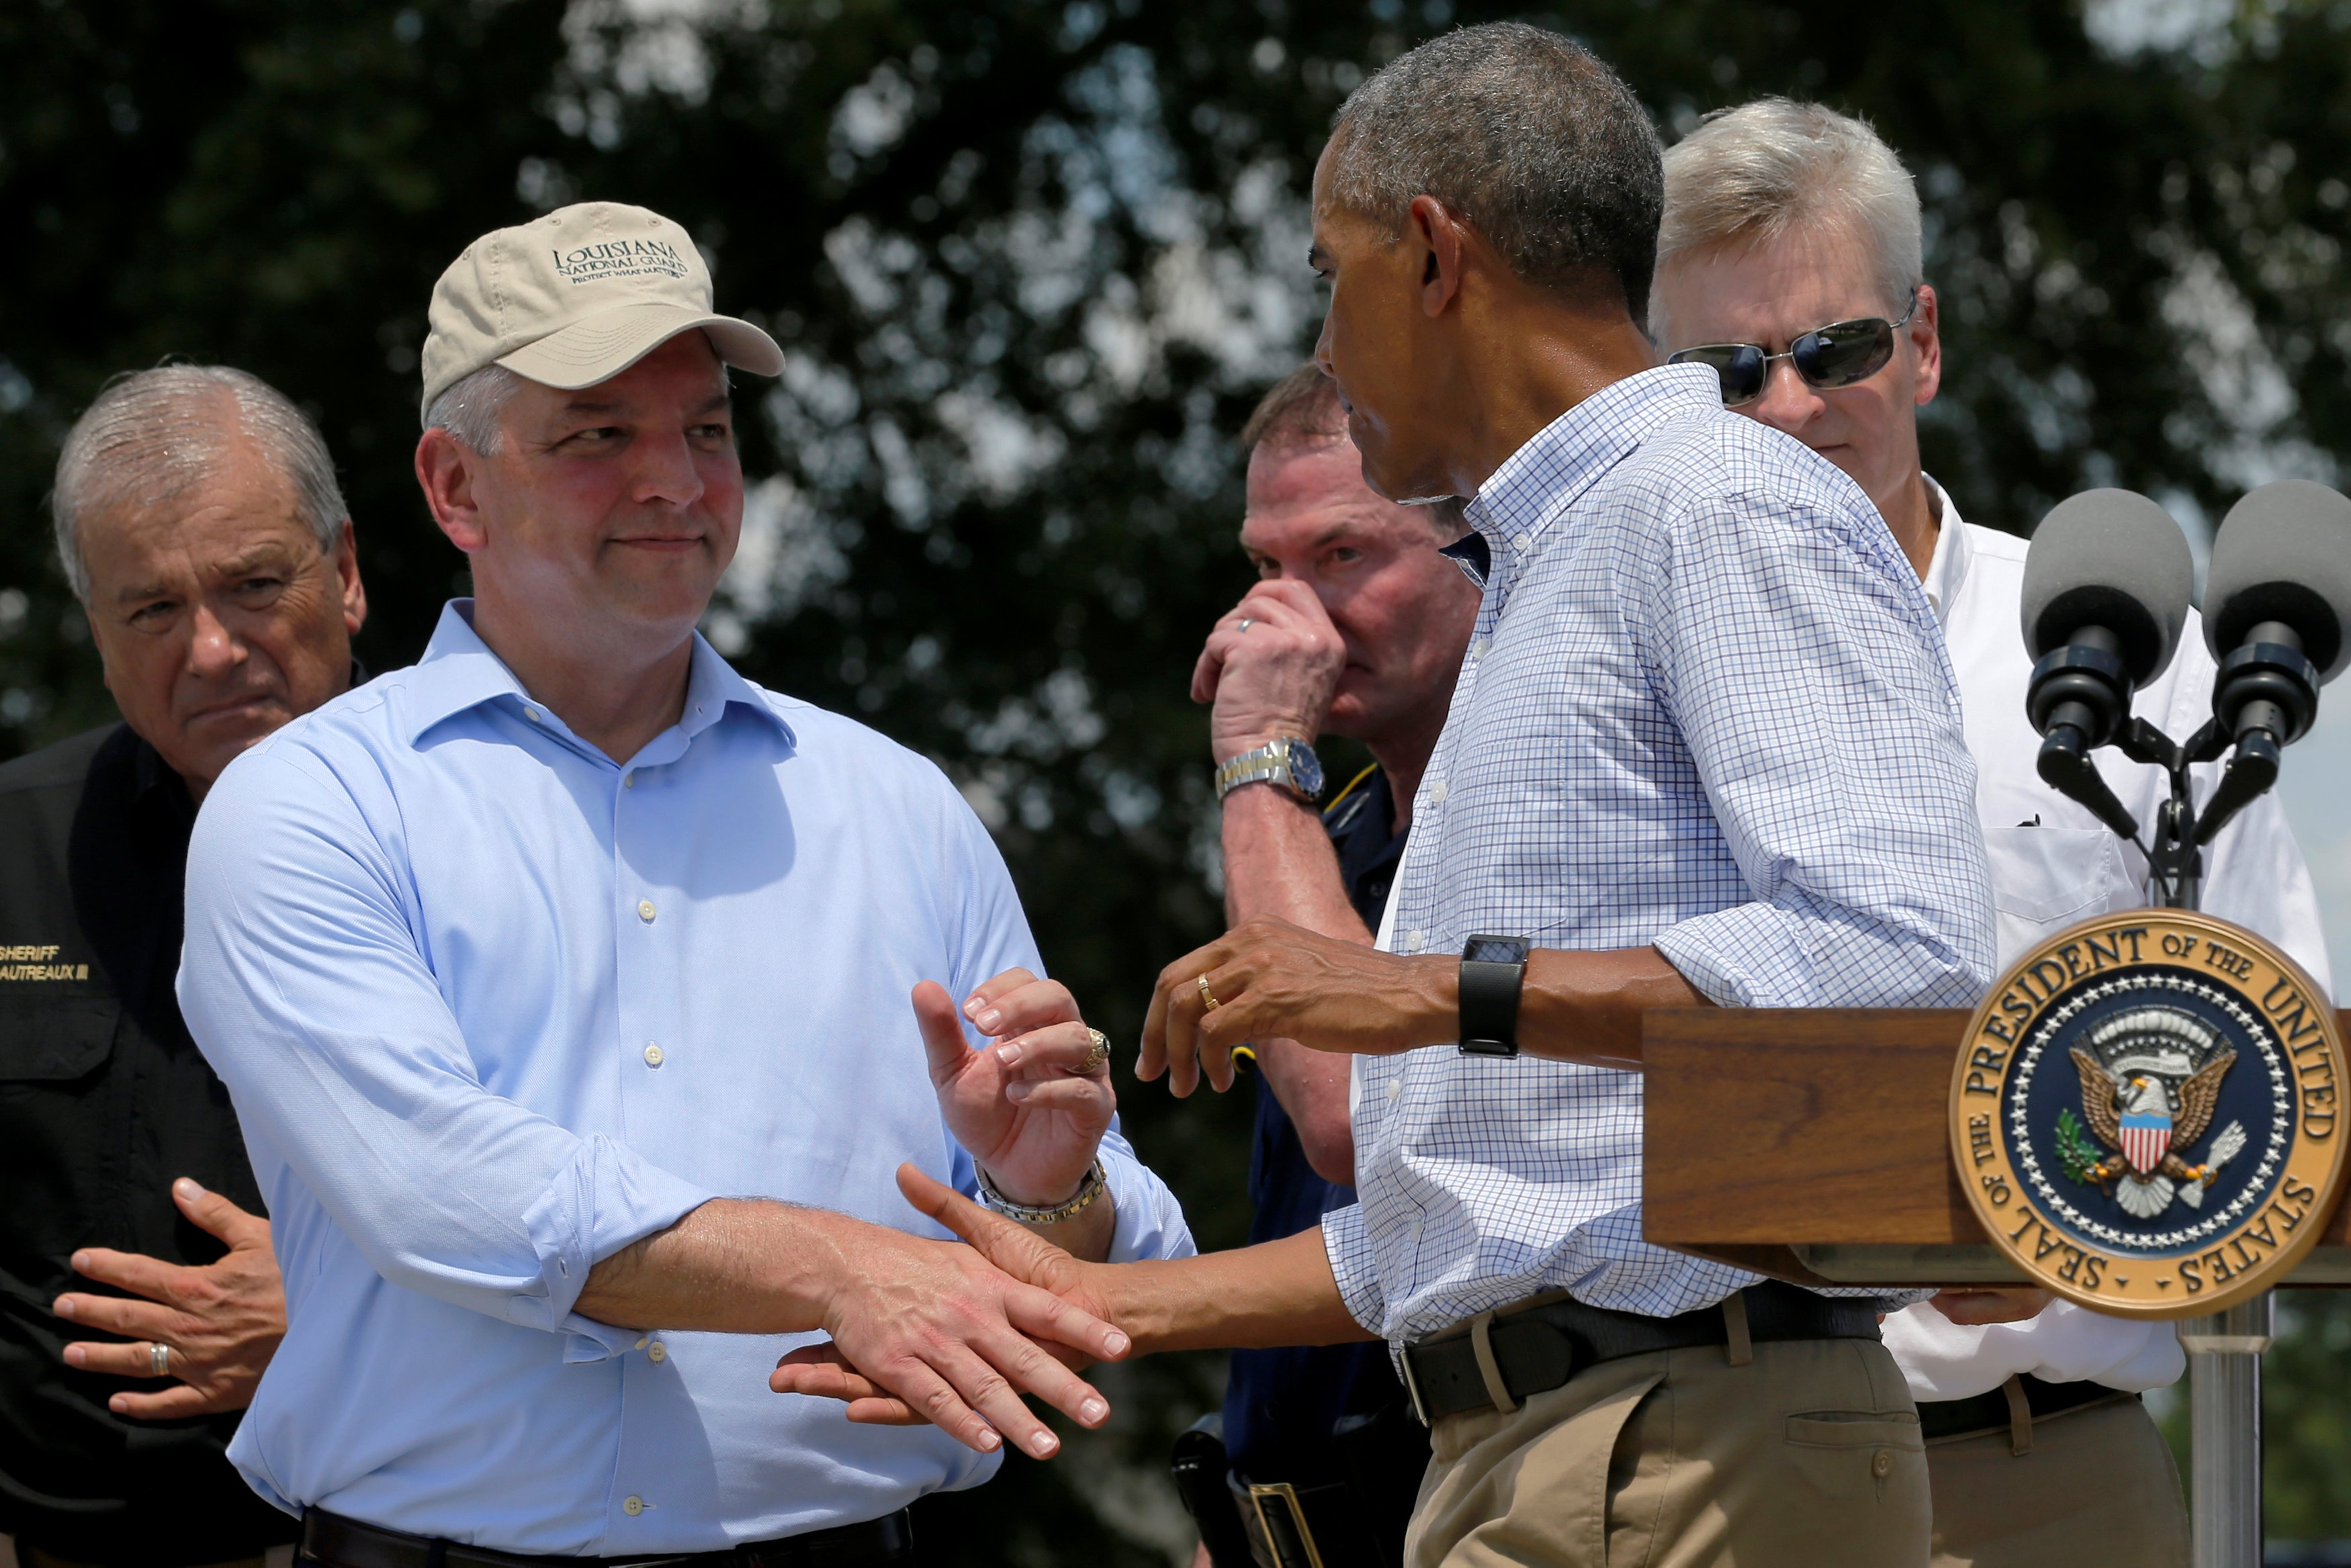 John Bel Edwards shakes hands with President Obama after his remarks following a tour of a flood-affected neighborhood in Zachary, Louisiana, on Aug. 23, 2016.